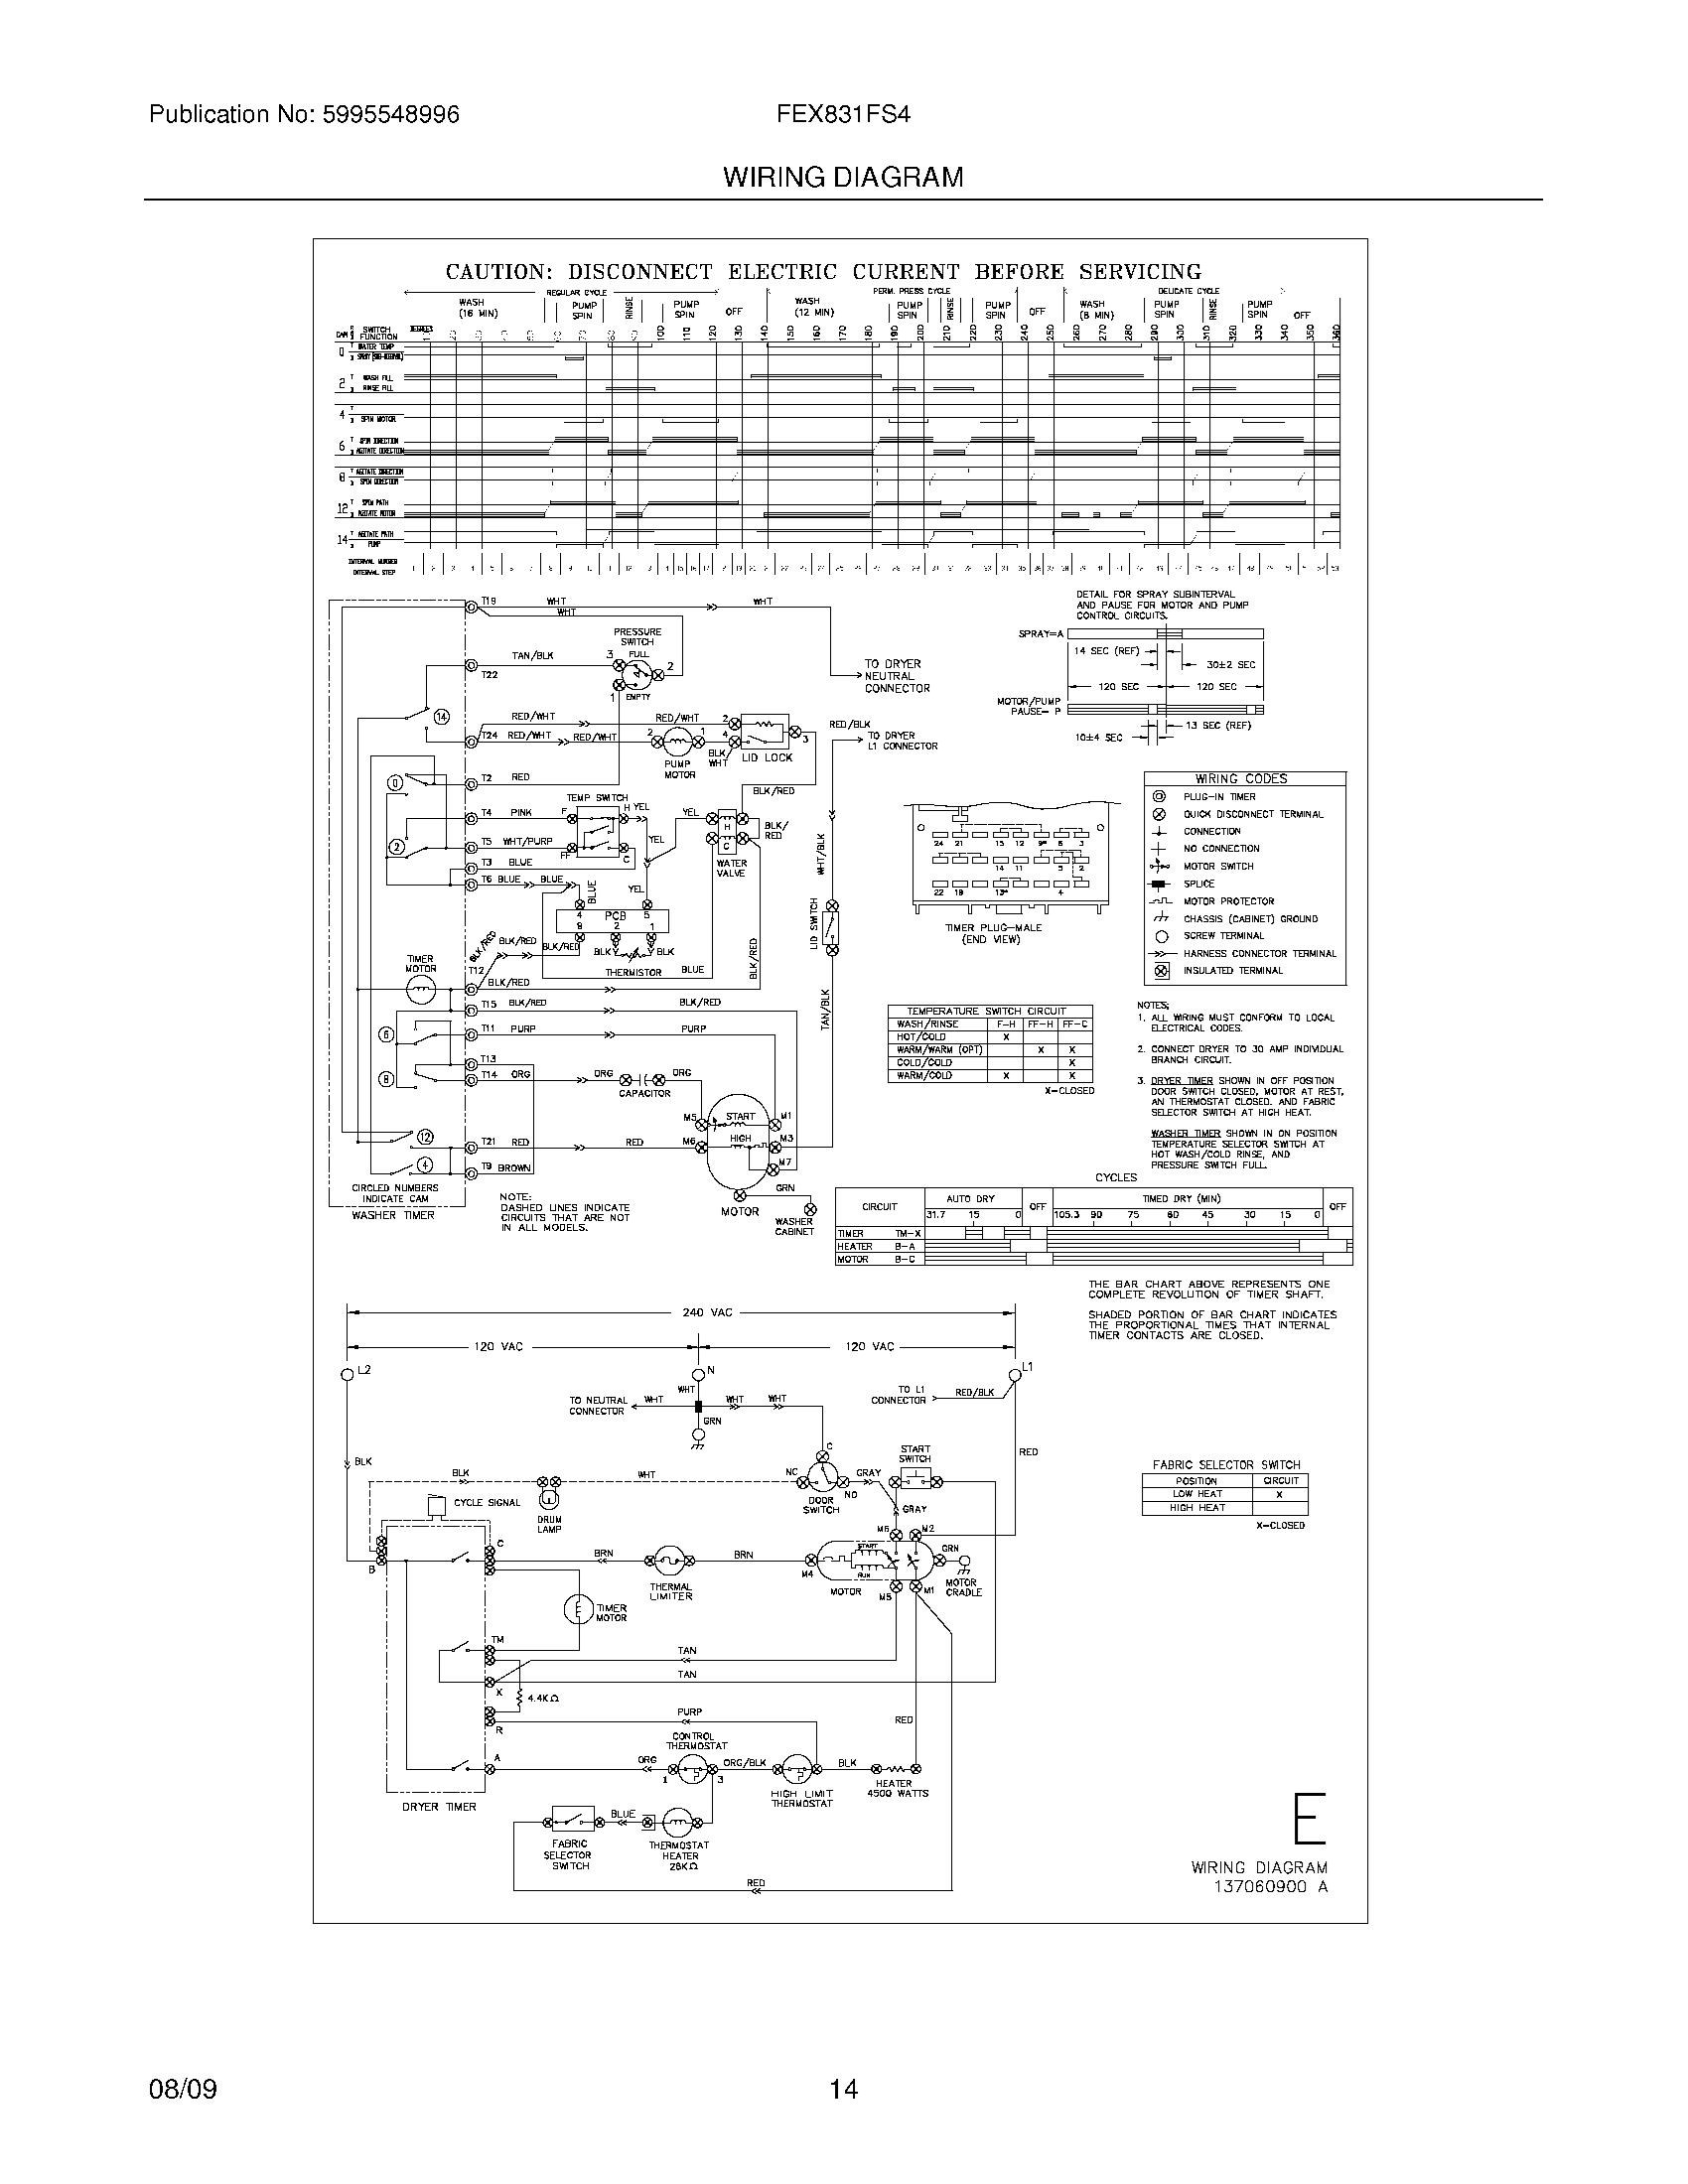 ElectroluxImg_19000101 20150717_00054183?width=1000 fex831fs4 frigidaire company appliance parts fex831fs4 wiring diagram at bayanpartner.co